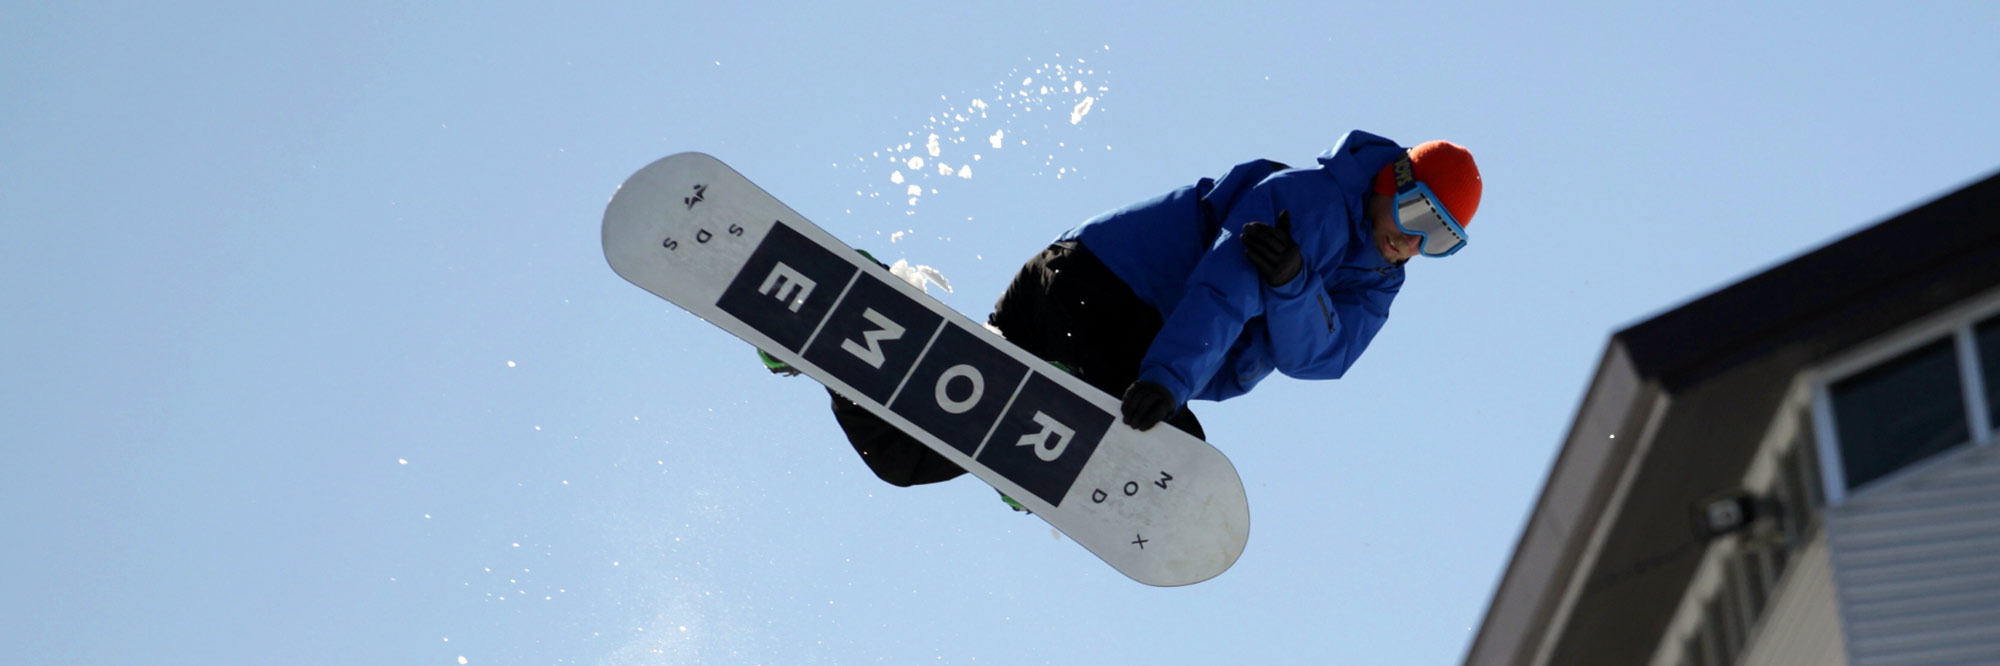 freestyle snowboarding in hakuba